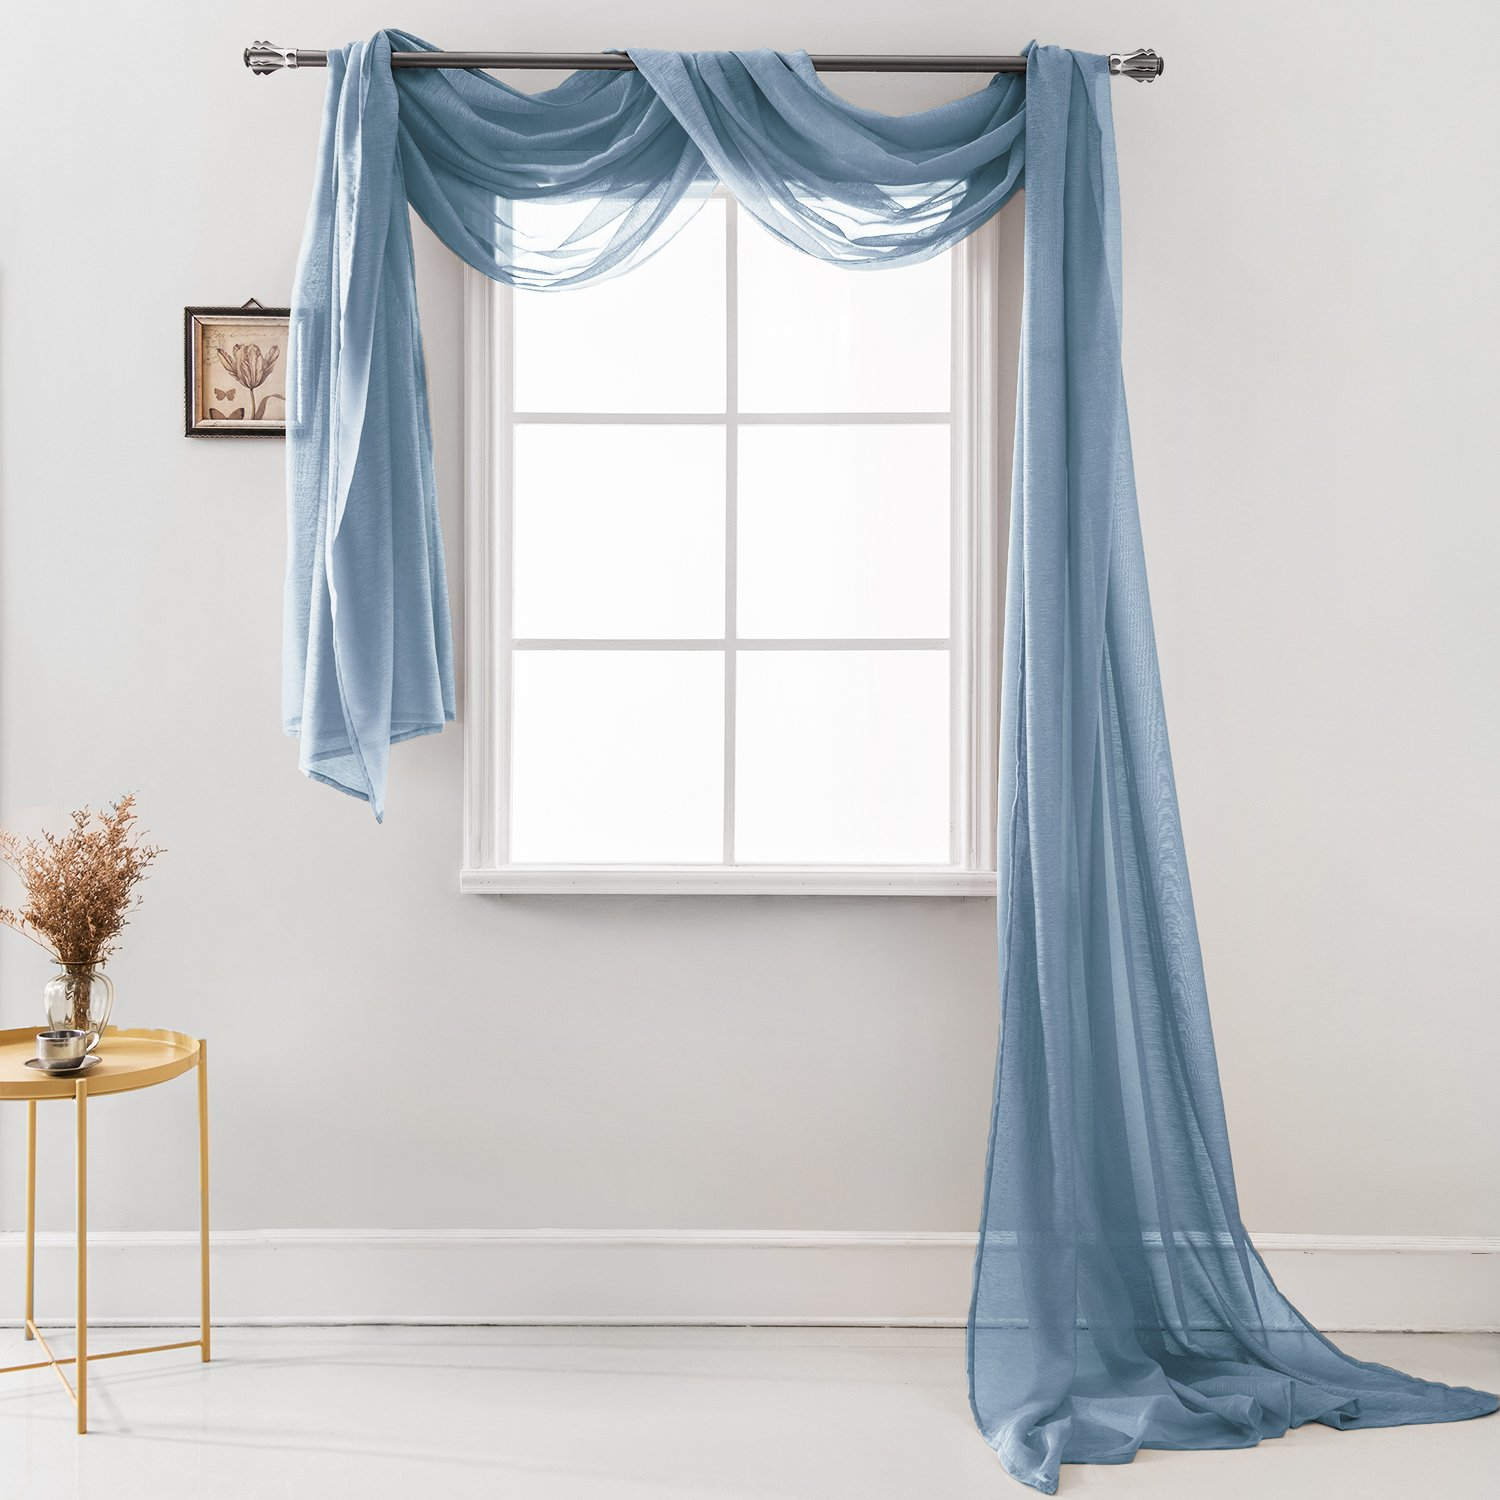 """Semi Sheer Luxury Scarf Window Decor Modern Classic Outdoor Home Design Light Penetrating Provide Privacy Soft Durable Polyester Easy Upkeep add to Curtains Drapes (Scarf 54'' x 216"""" Quite Blue)"""